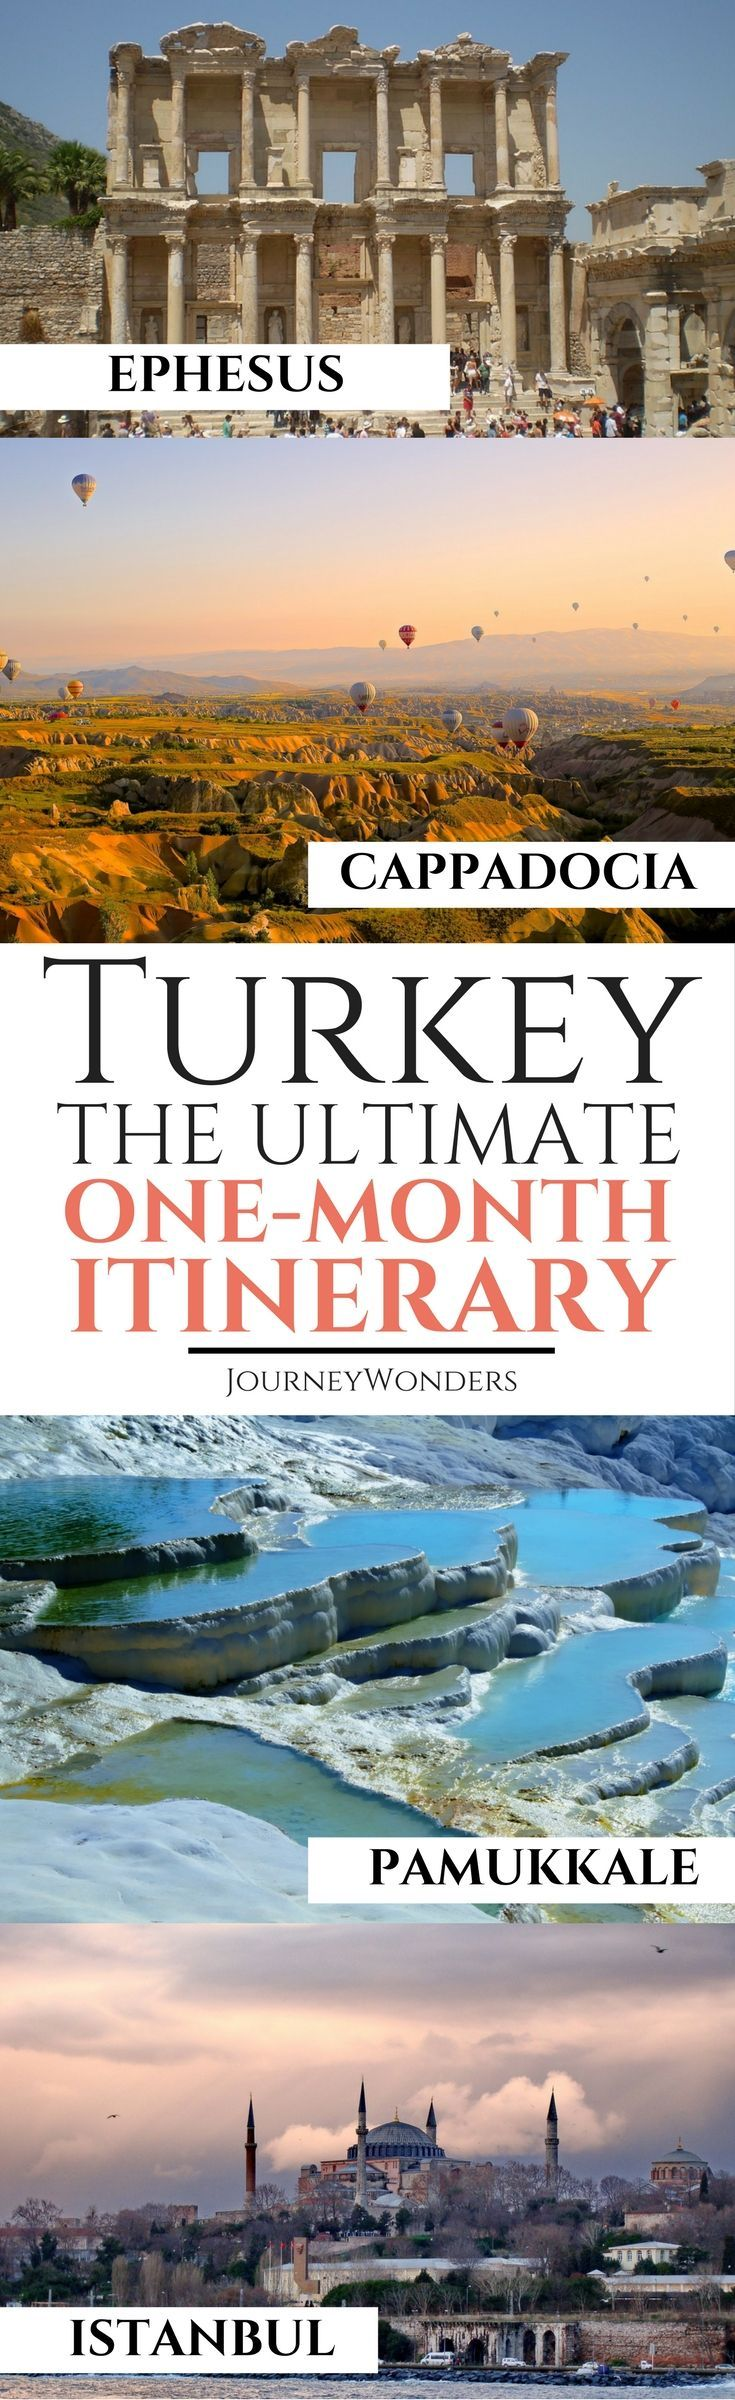 The best article for everything about One Month Turkey Itinerary | Turkey Travel Guide | Things to do in Turkey | Turkey Travel Tips | Turkey Photos | Where to Stay in Turkey | Turkey Tips and more via @journeywonders